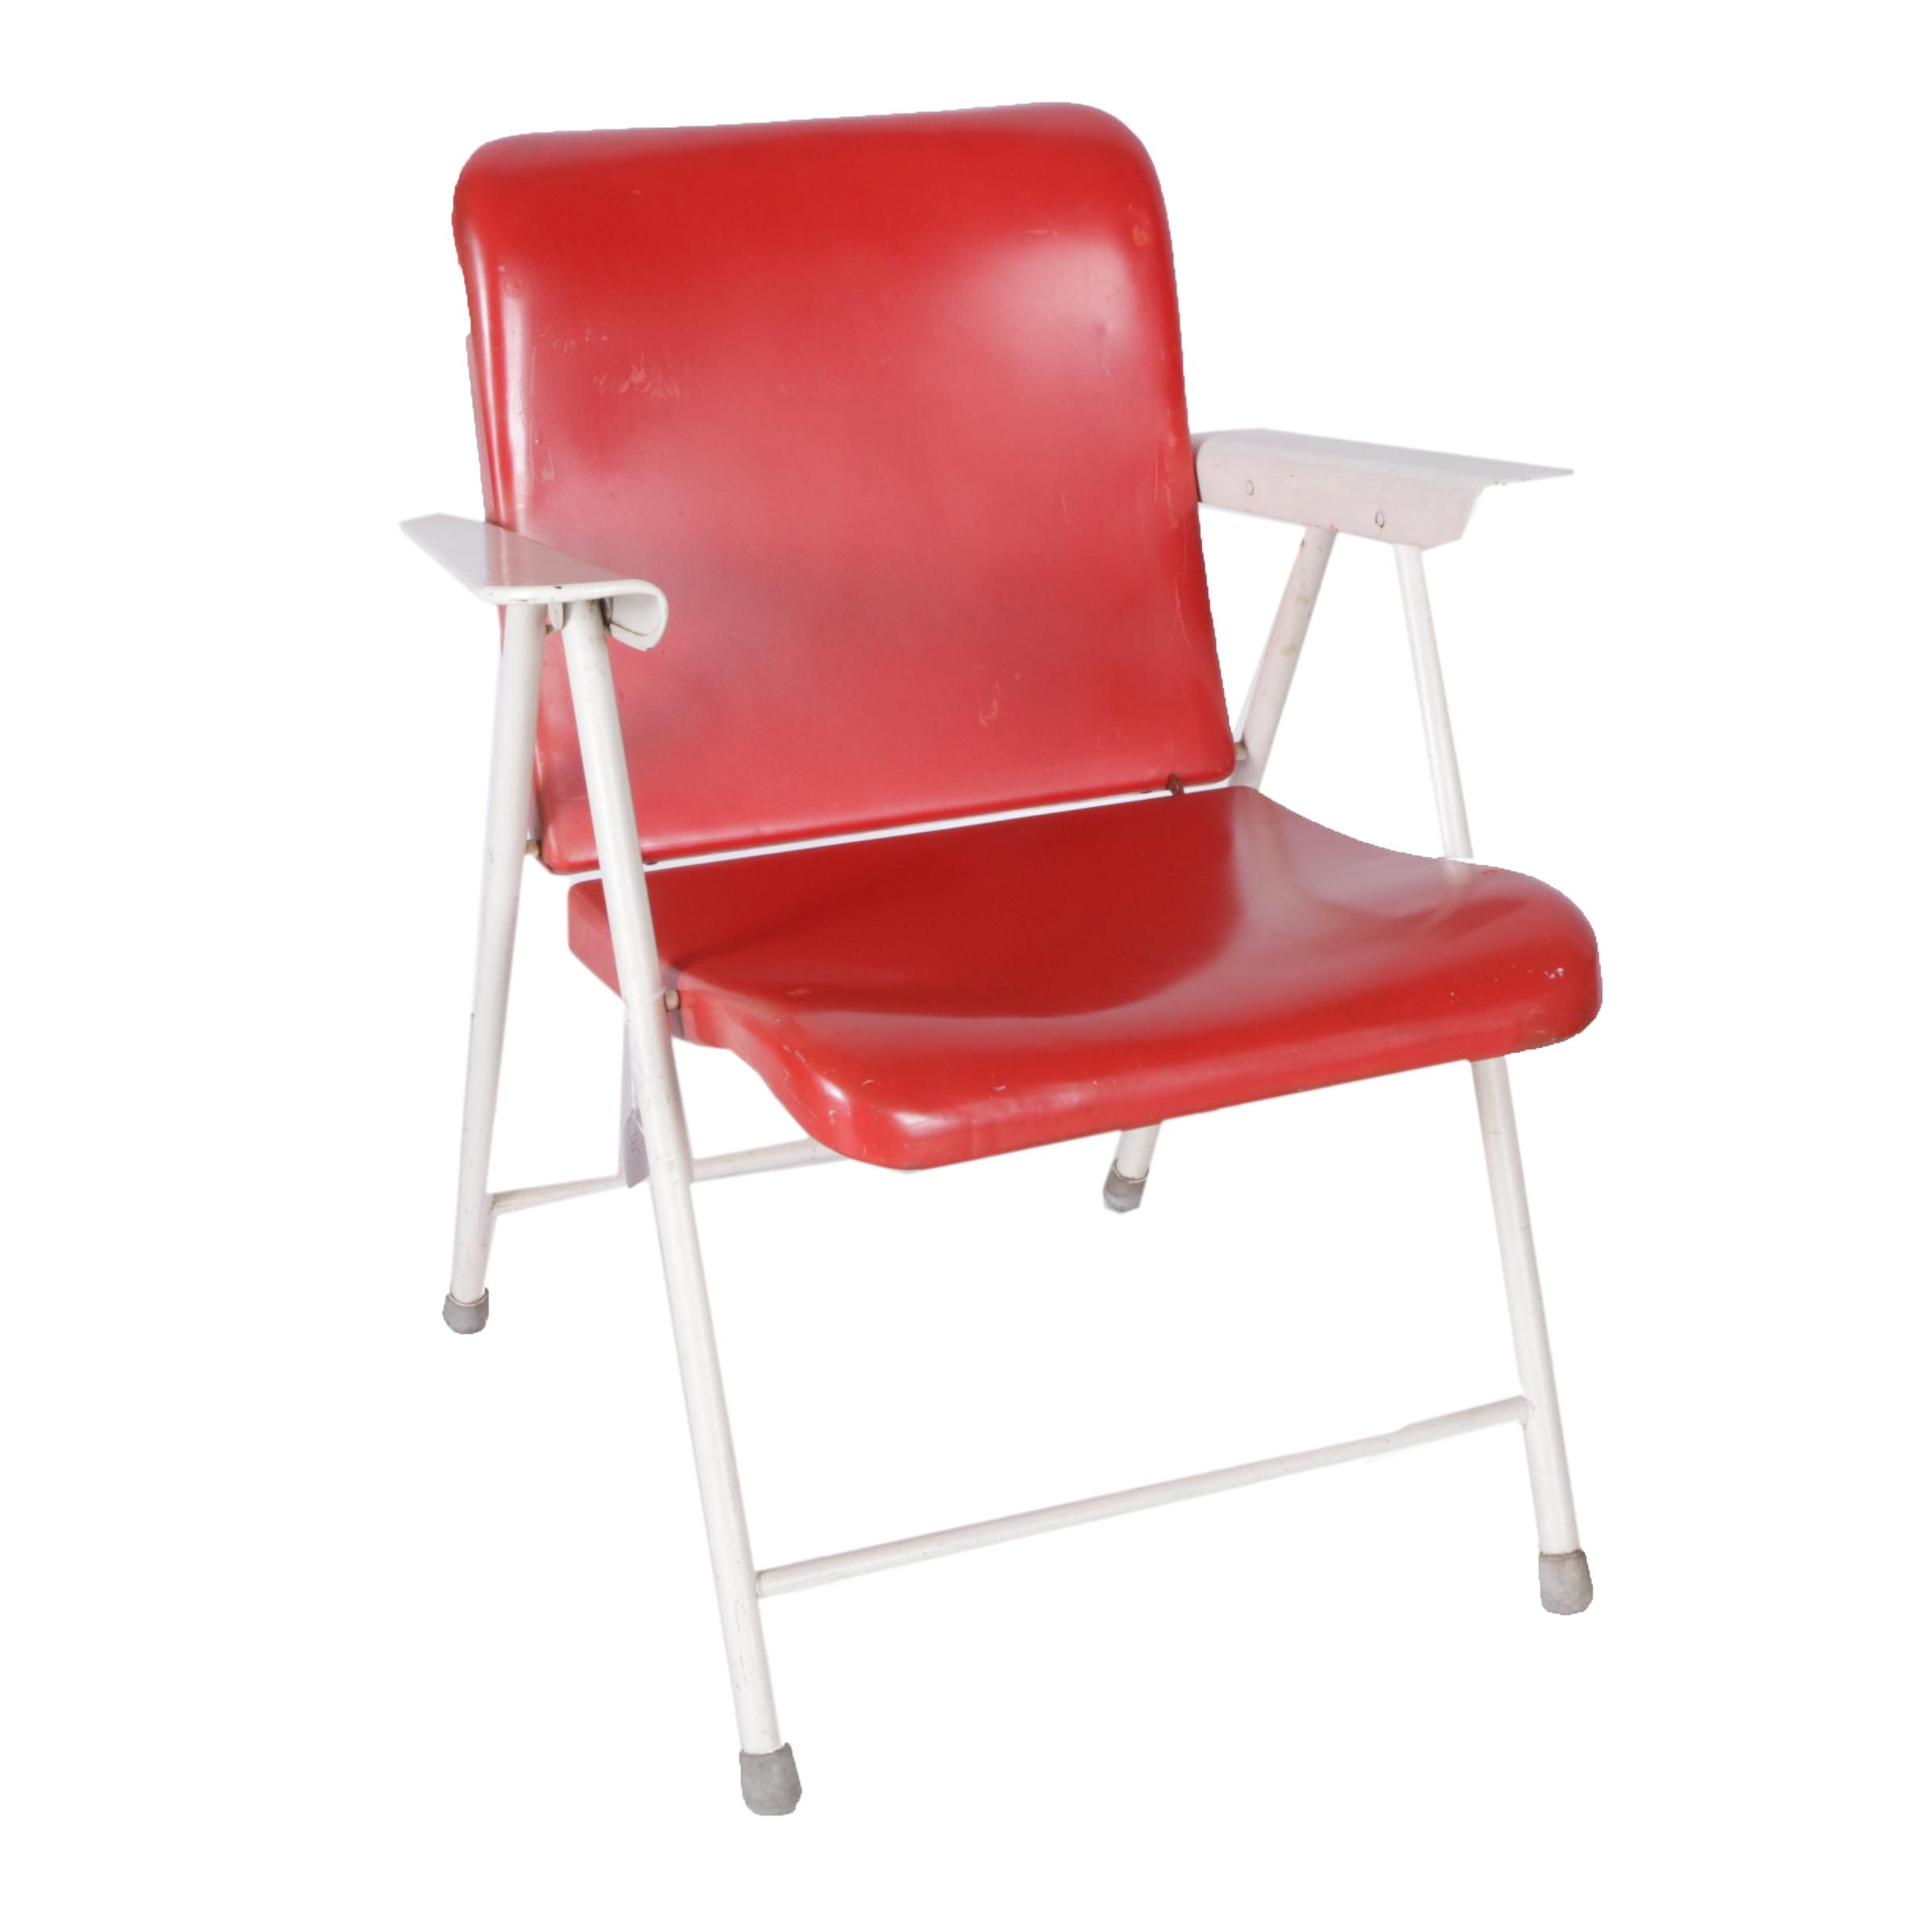 Vintage Mid Century Modern Folding Chair By Russel Wright For Samson Chairs  ...